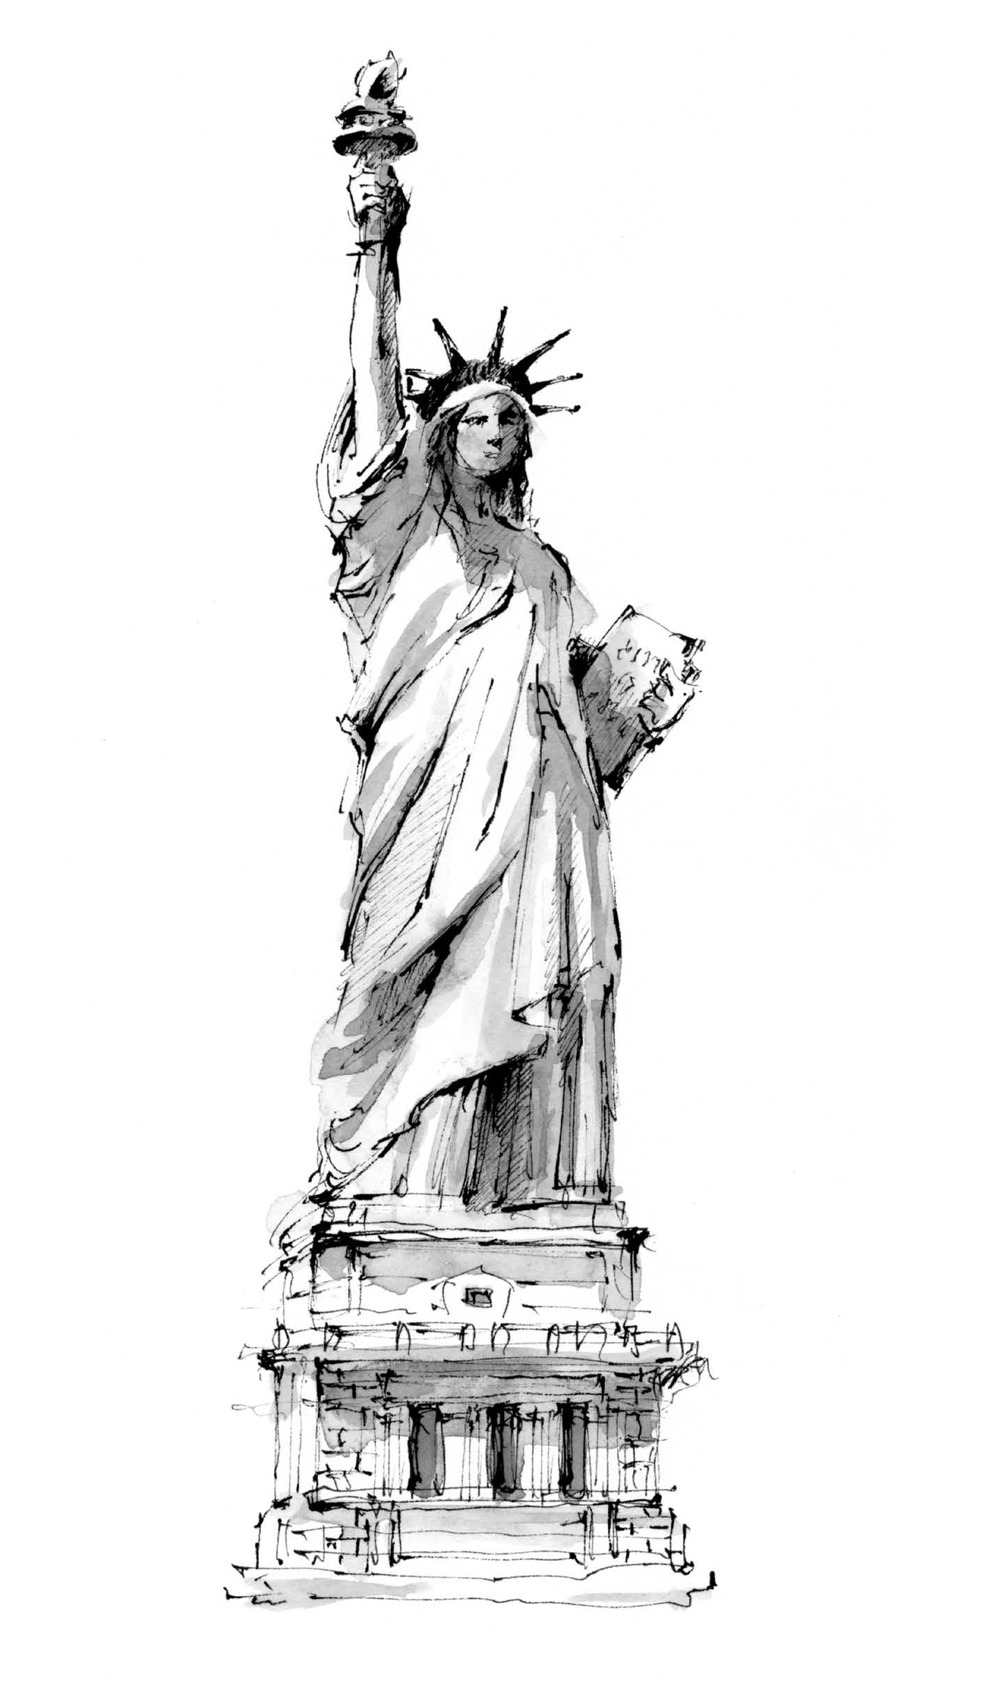 statue of liberty sketch httpgregssketchblogspotcom200903statue of liberty liberty statue sketch of